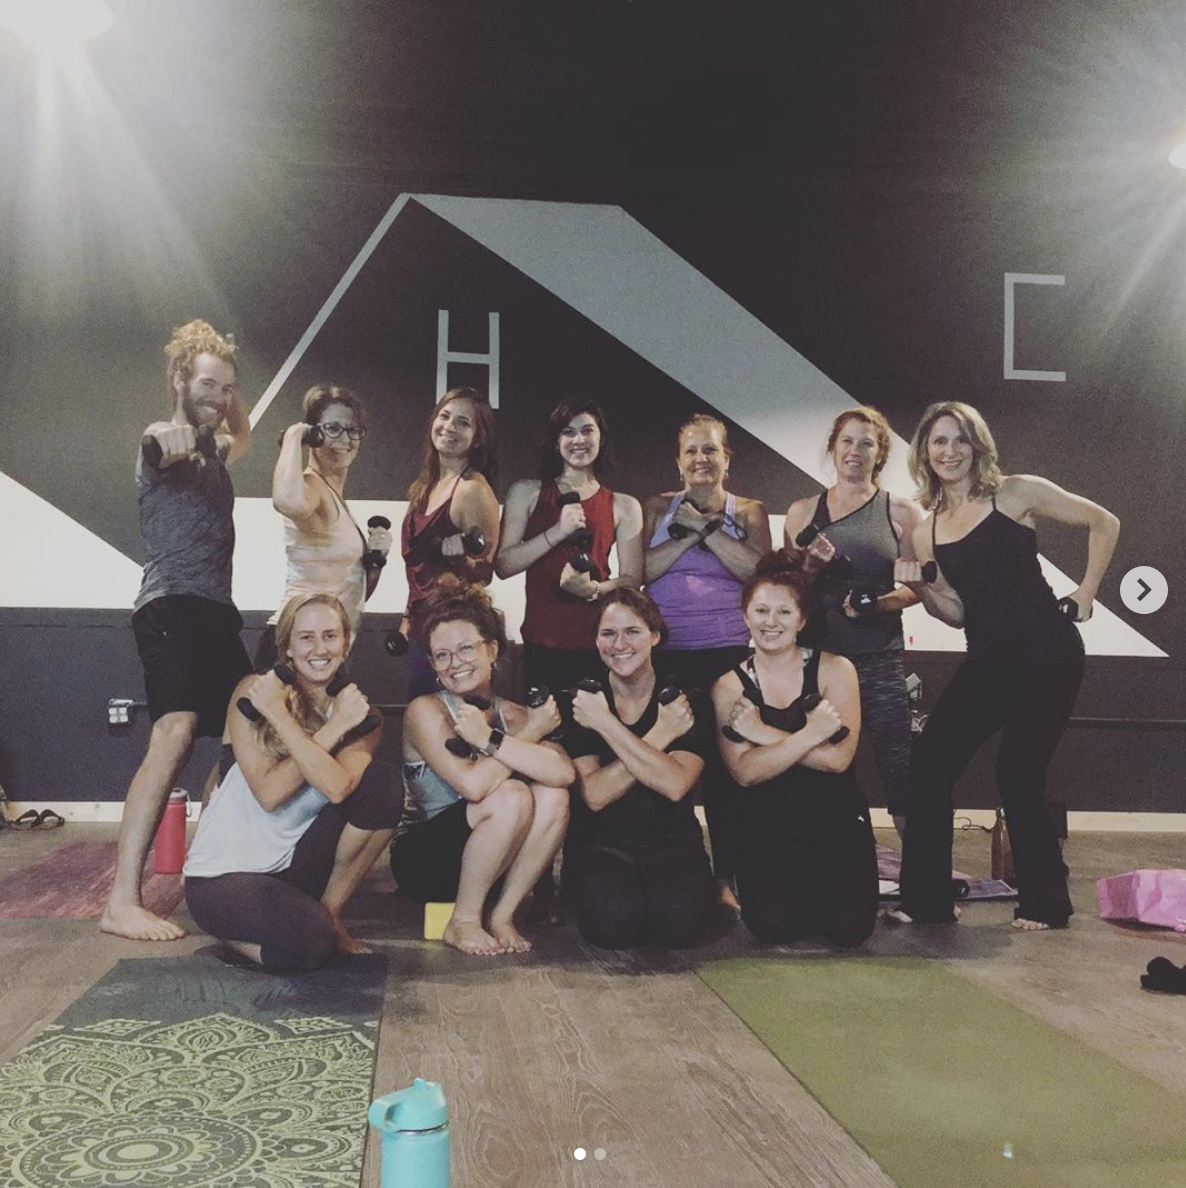 The Ahimsa Chisel training was a success! Our teachers are ready to help you get stronger! P.s. don't mind the paint - that's the old paint from the church that was in the space prior.